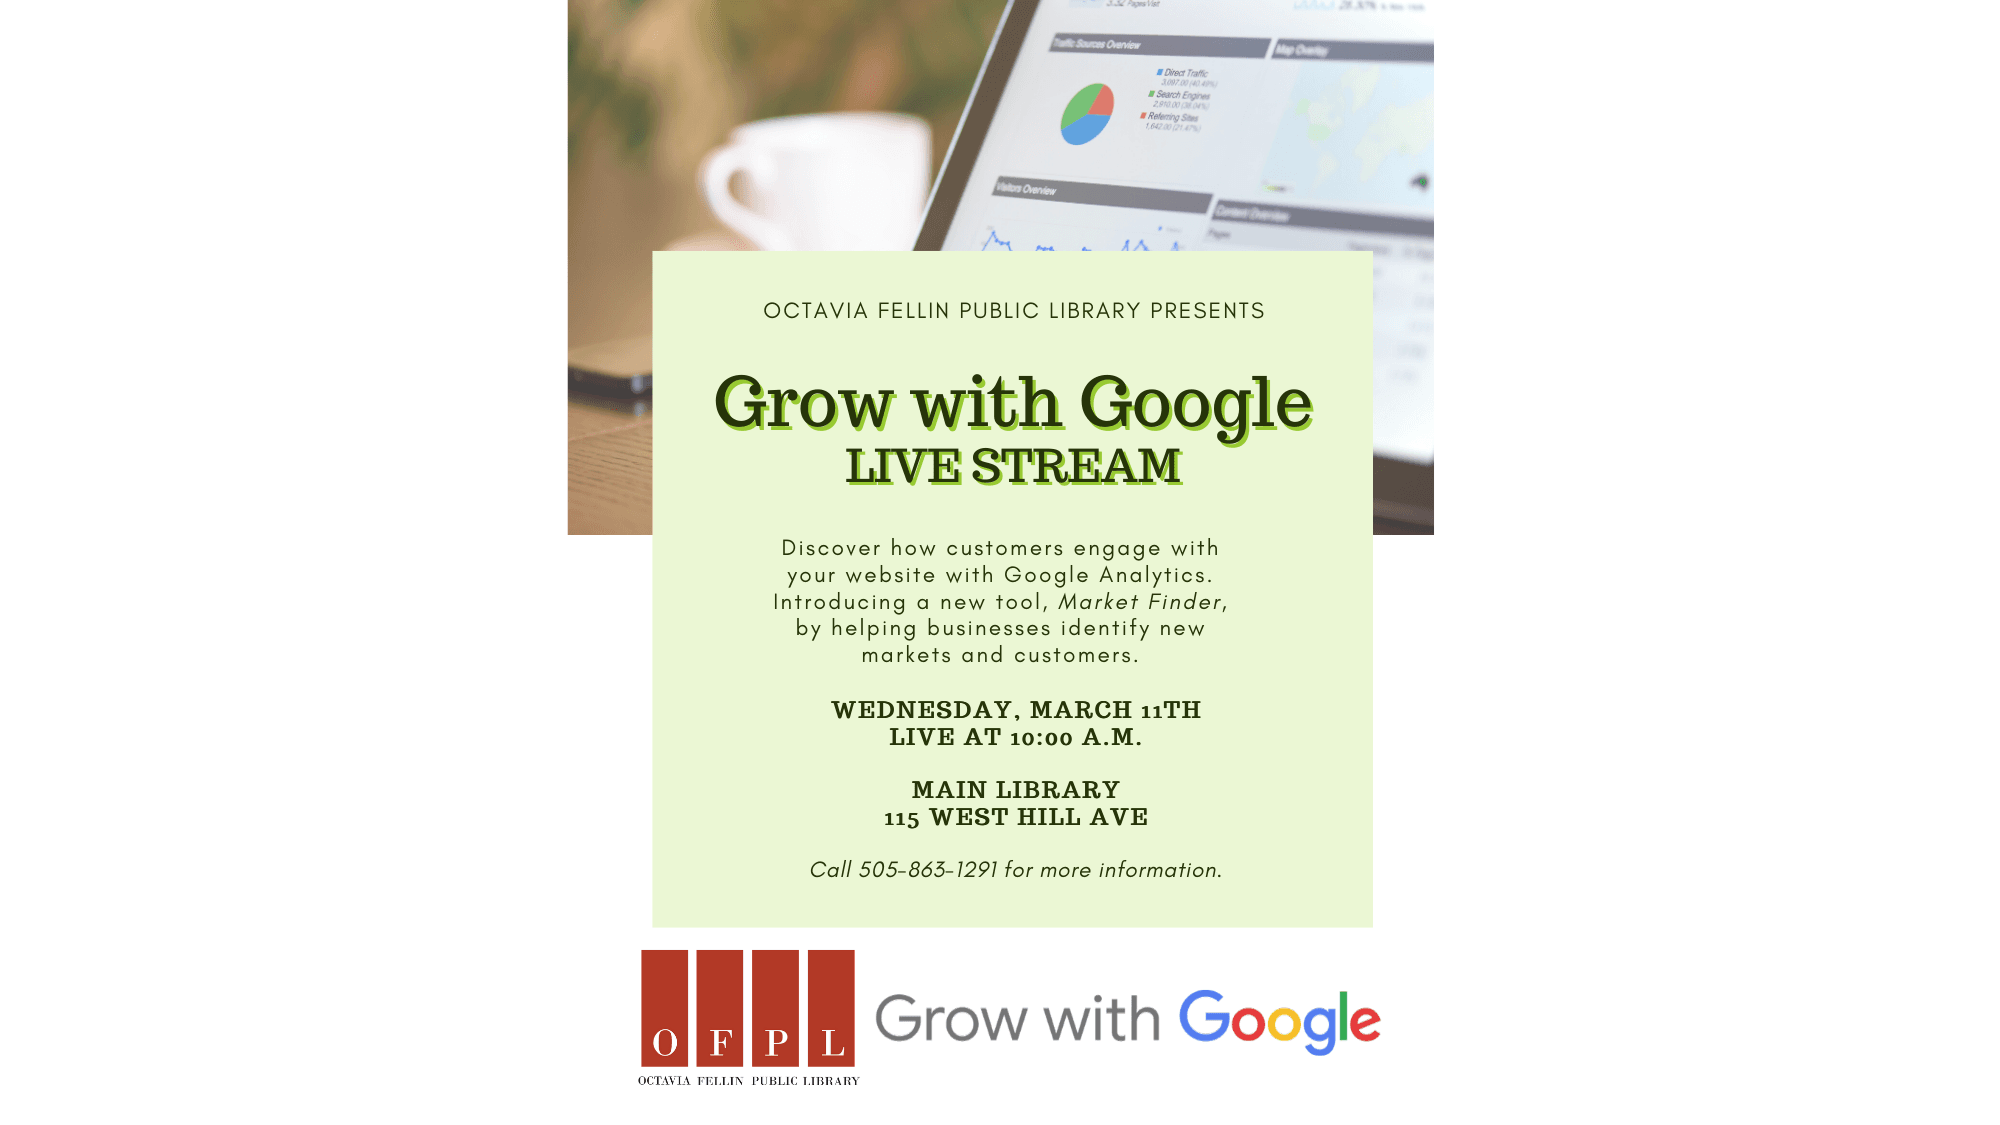 Grow with Google LIVE STREAM